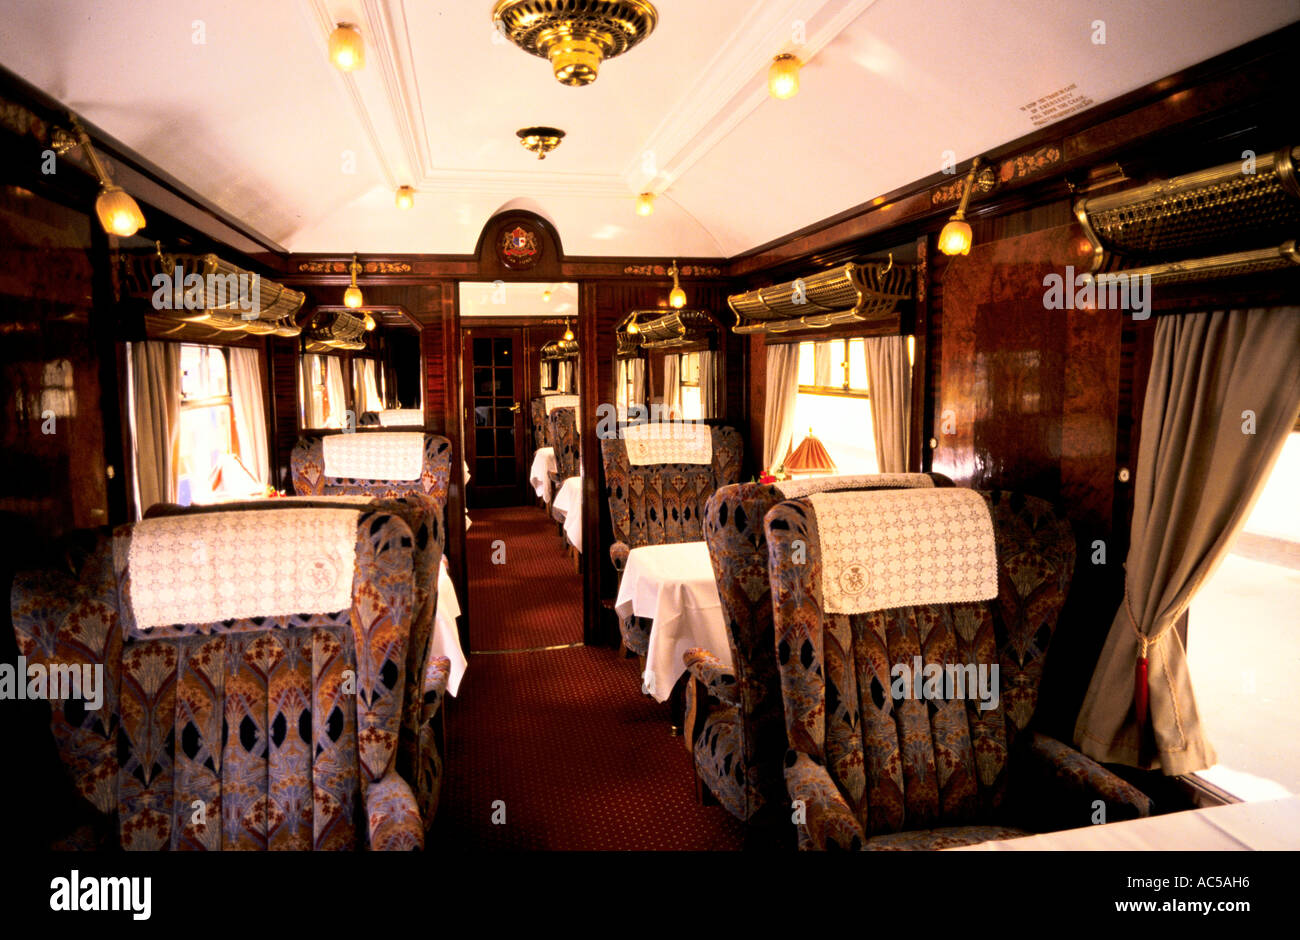 Orient express interior of the orient express stock photo for Interior pictures